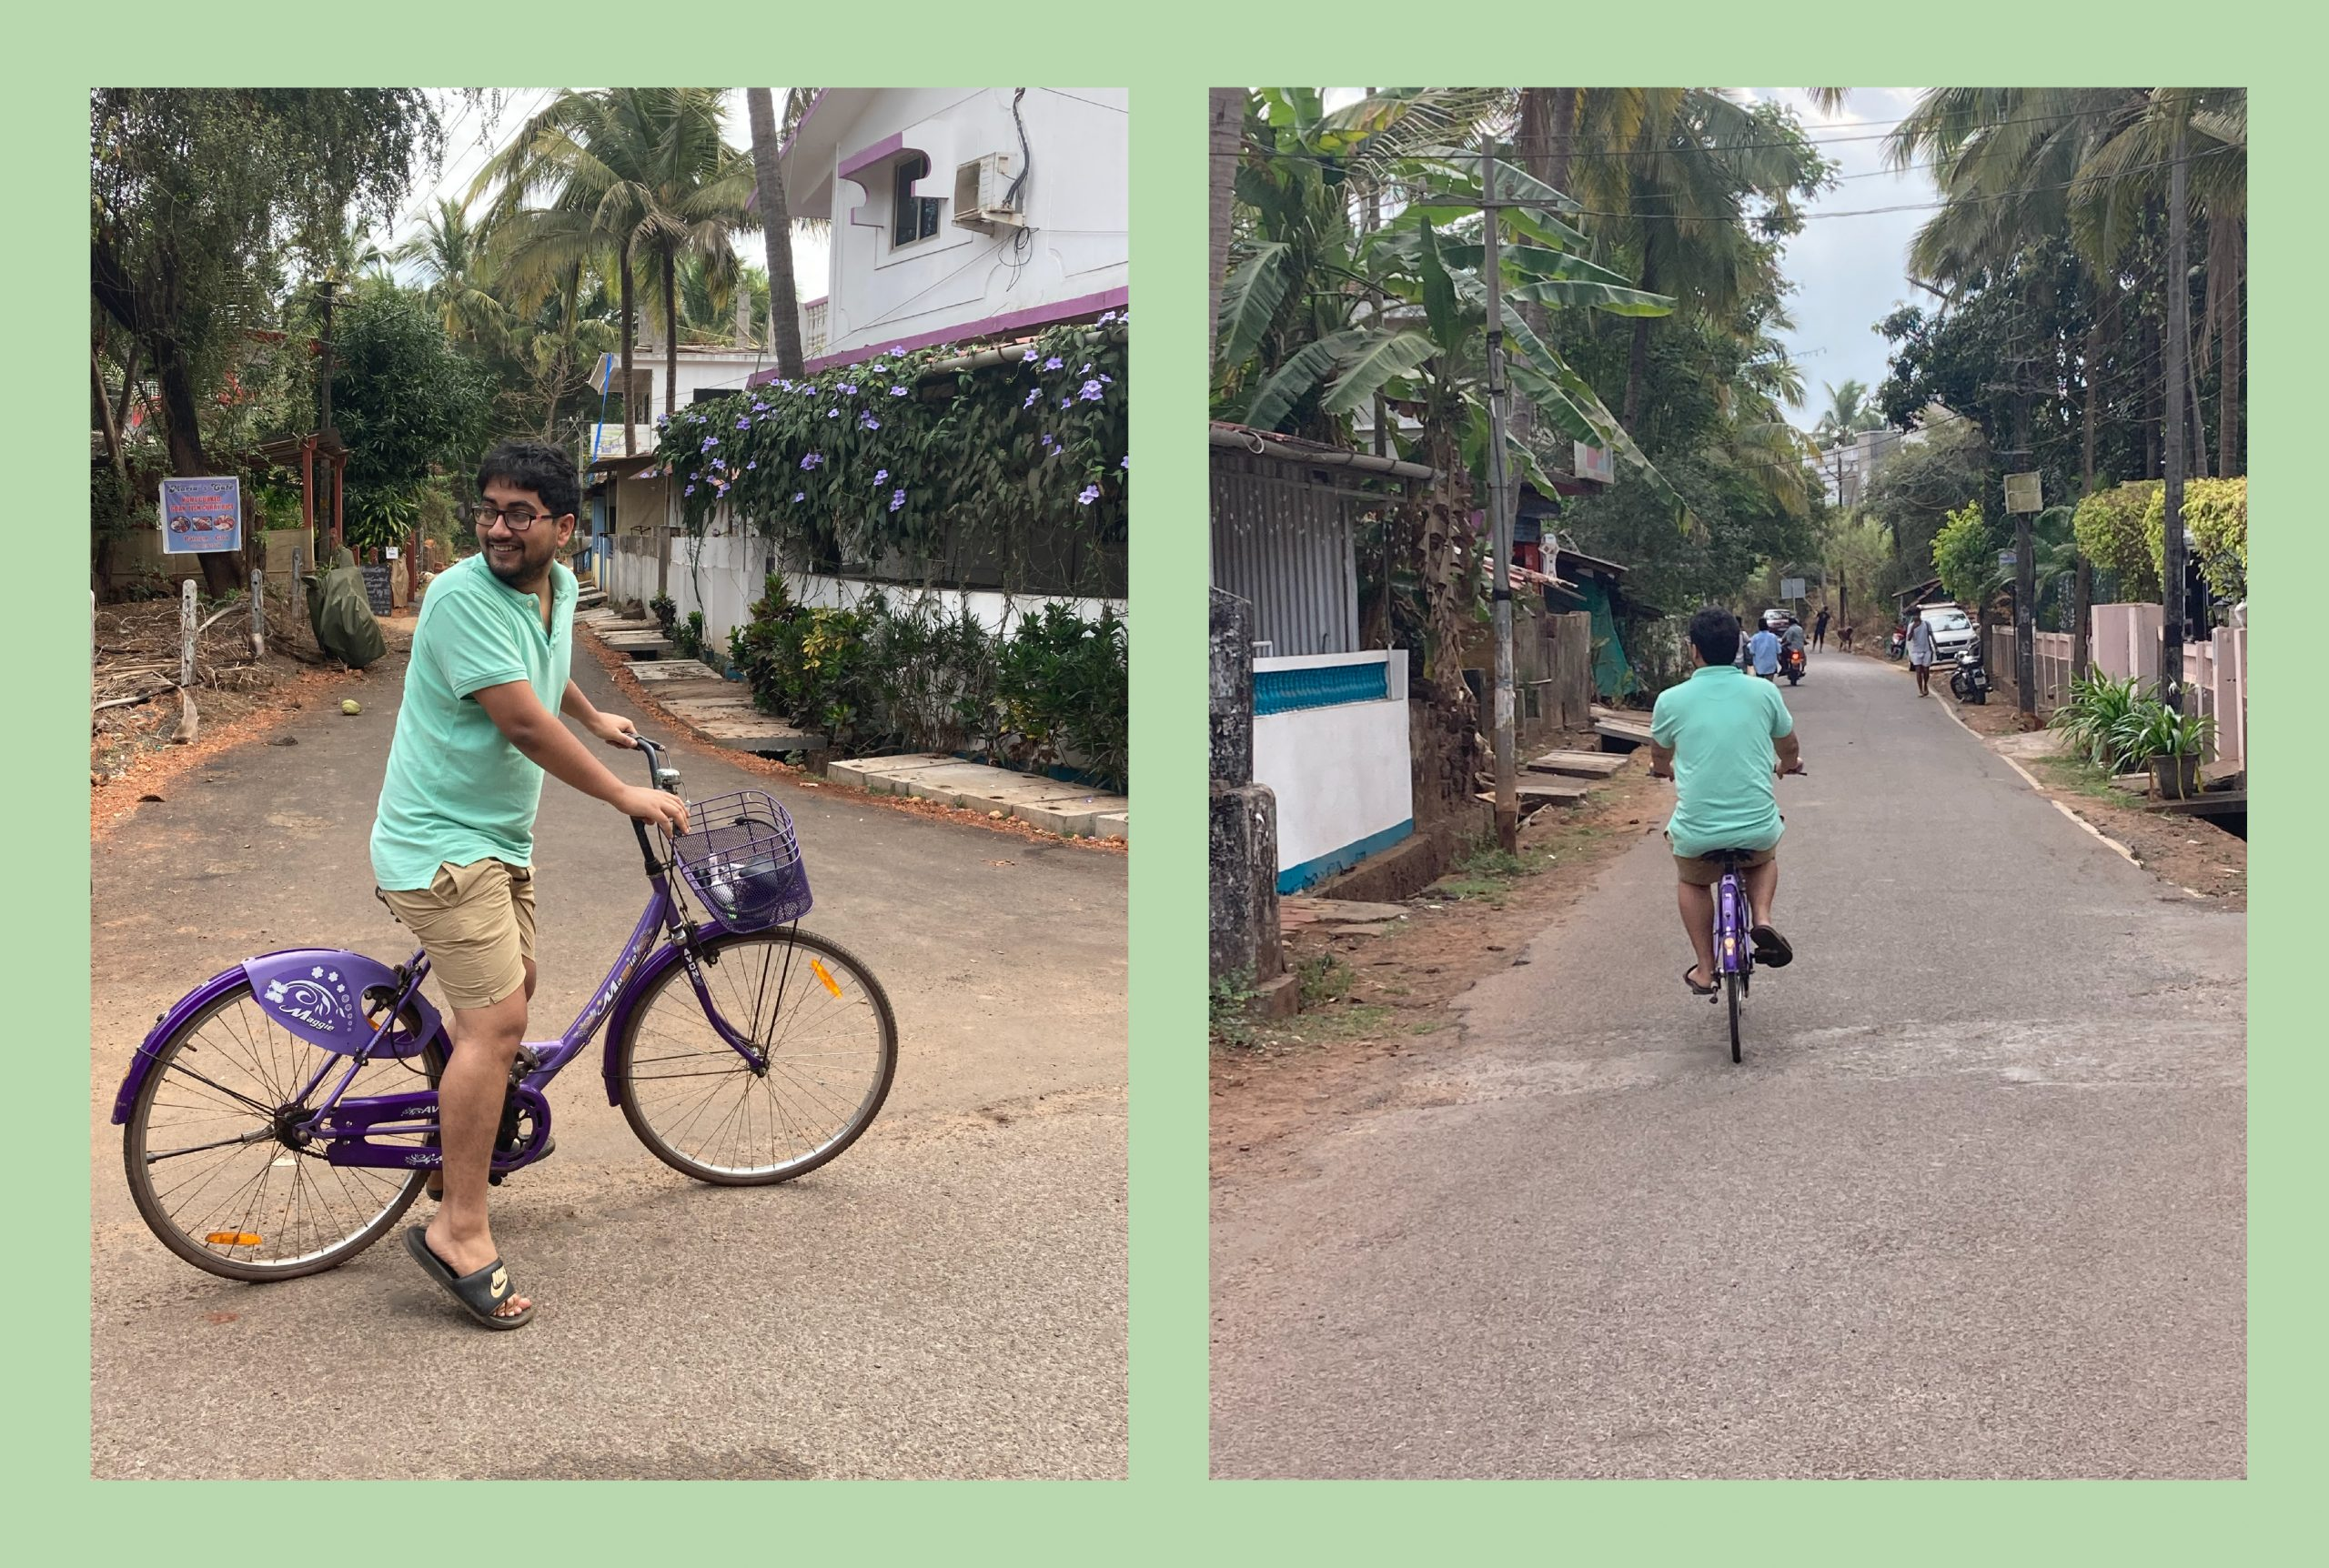 Two images of an Indian man wearing a turquoise tshirt and beige shorts riding a bycyle on a road with trees on the side.